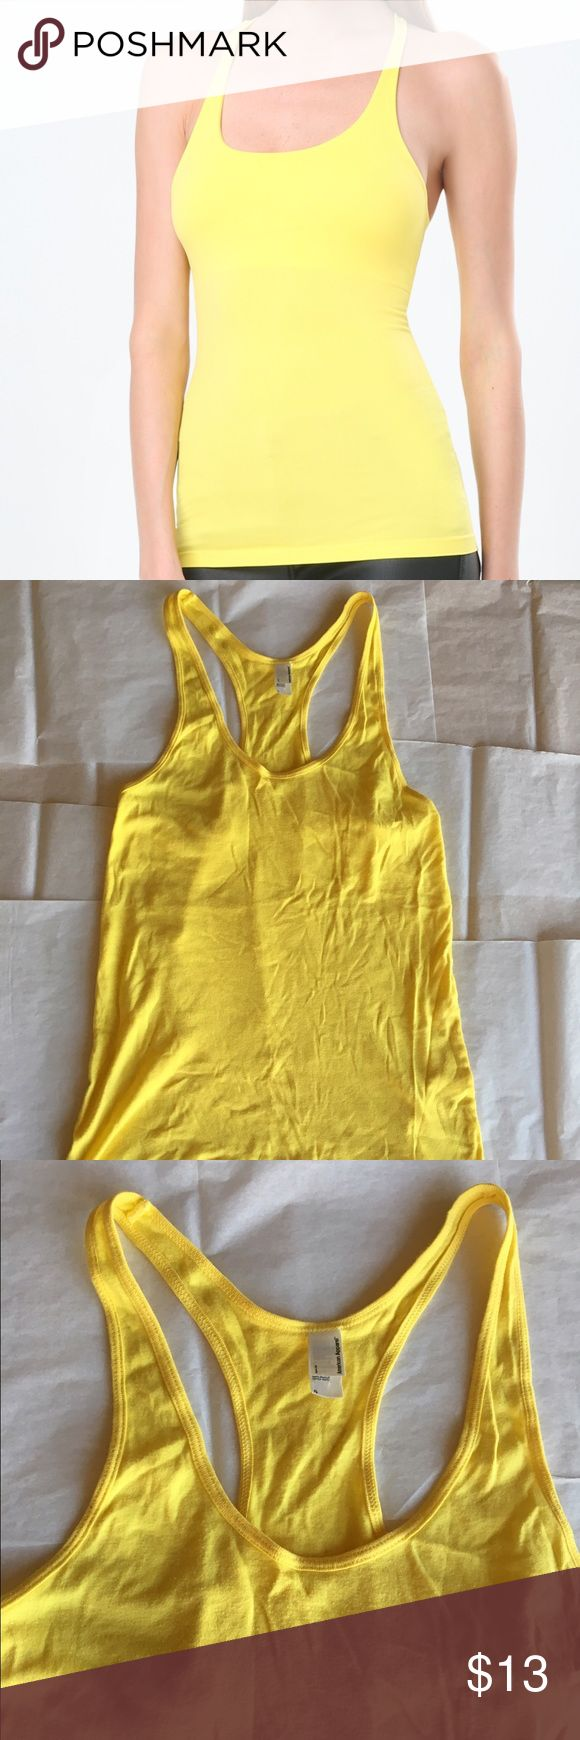 Solid Tank Top American Apparel racerback tank top in yellow. Can be worn alone or layering. Women's Size S. American Apparel Tops Tank Tops